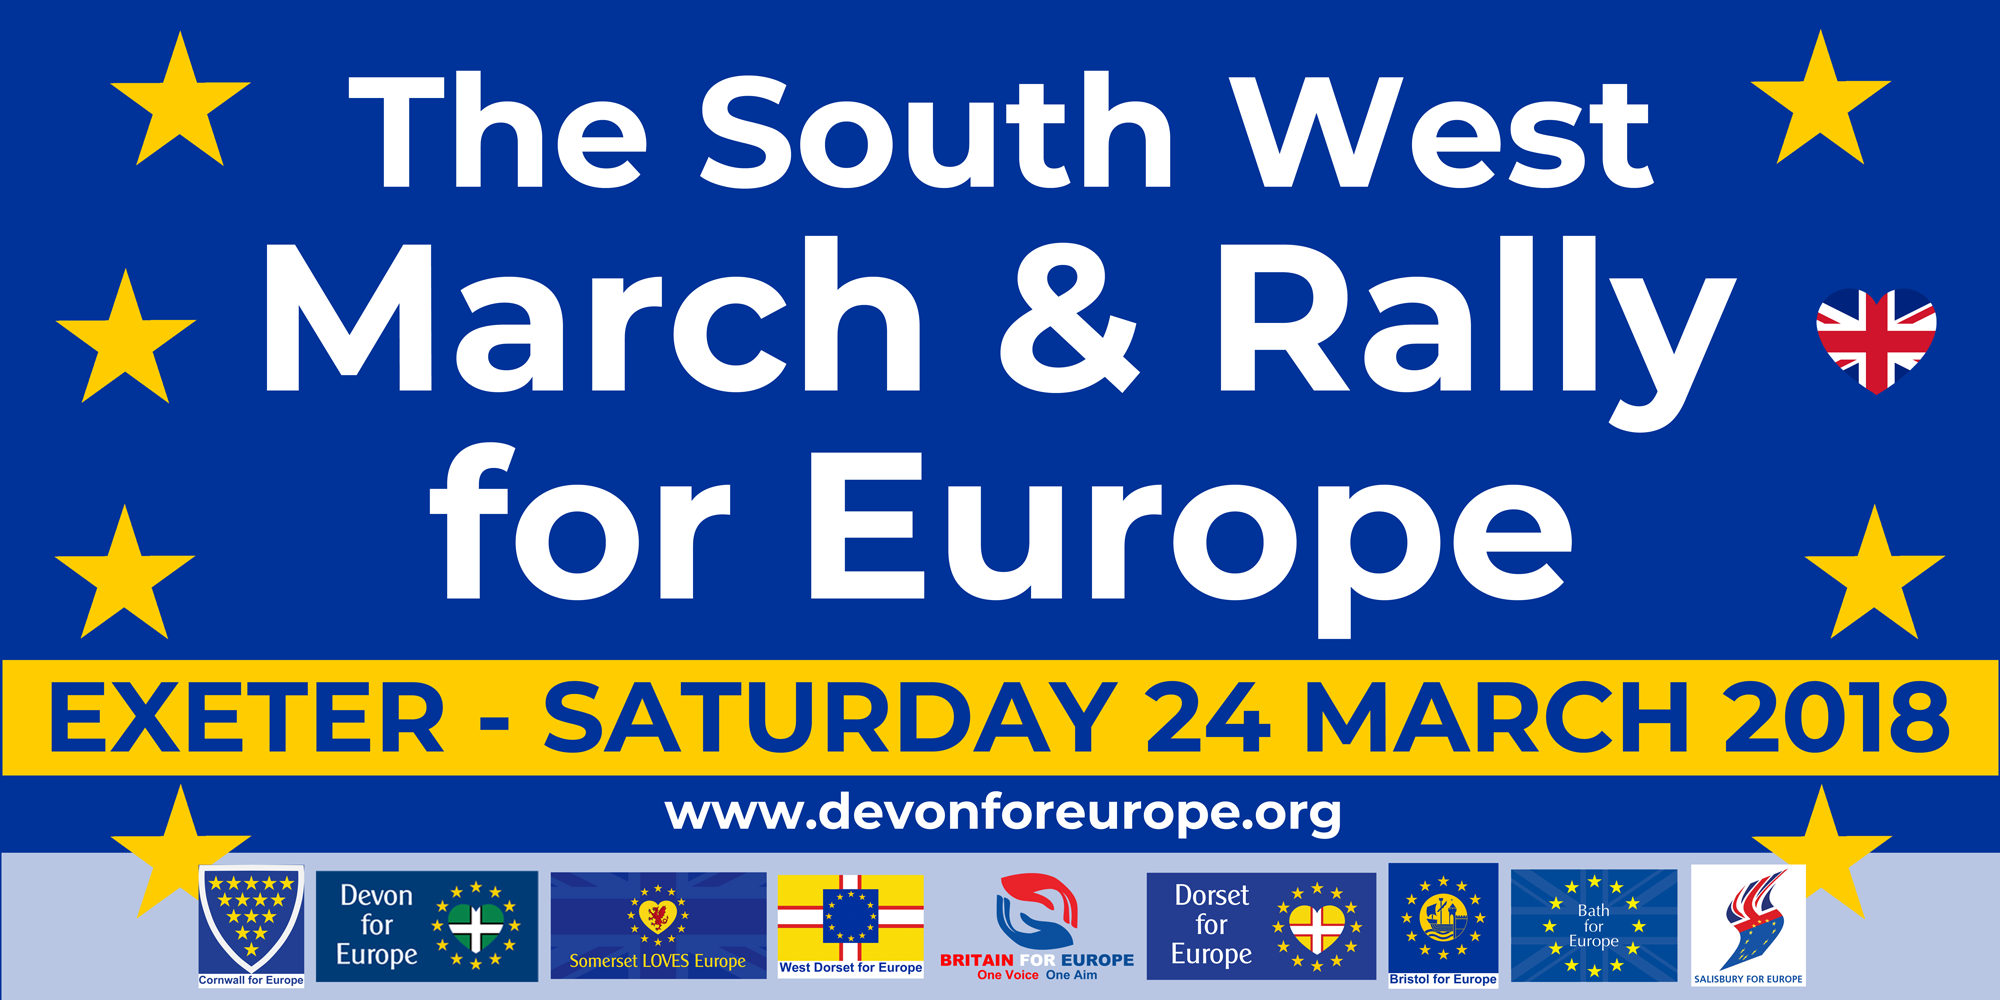 The South West March & Rally for Europe